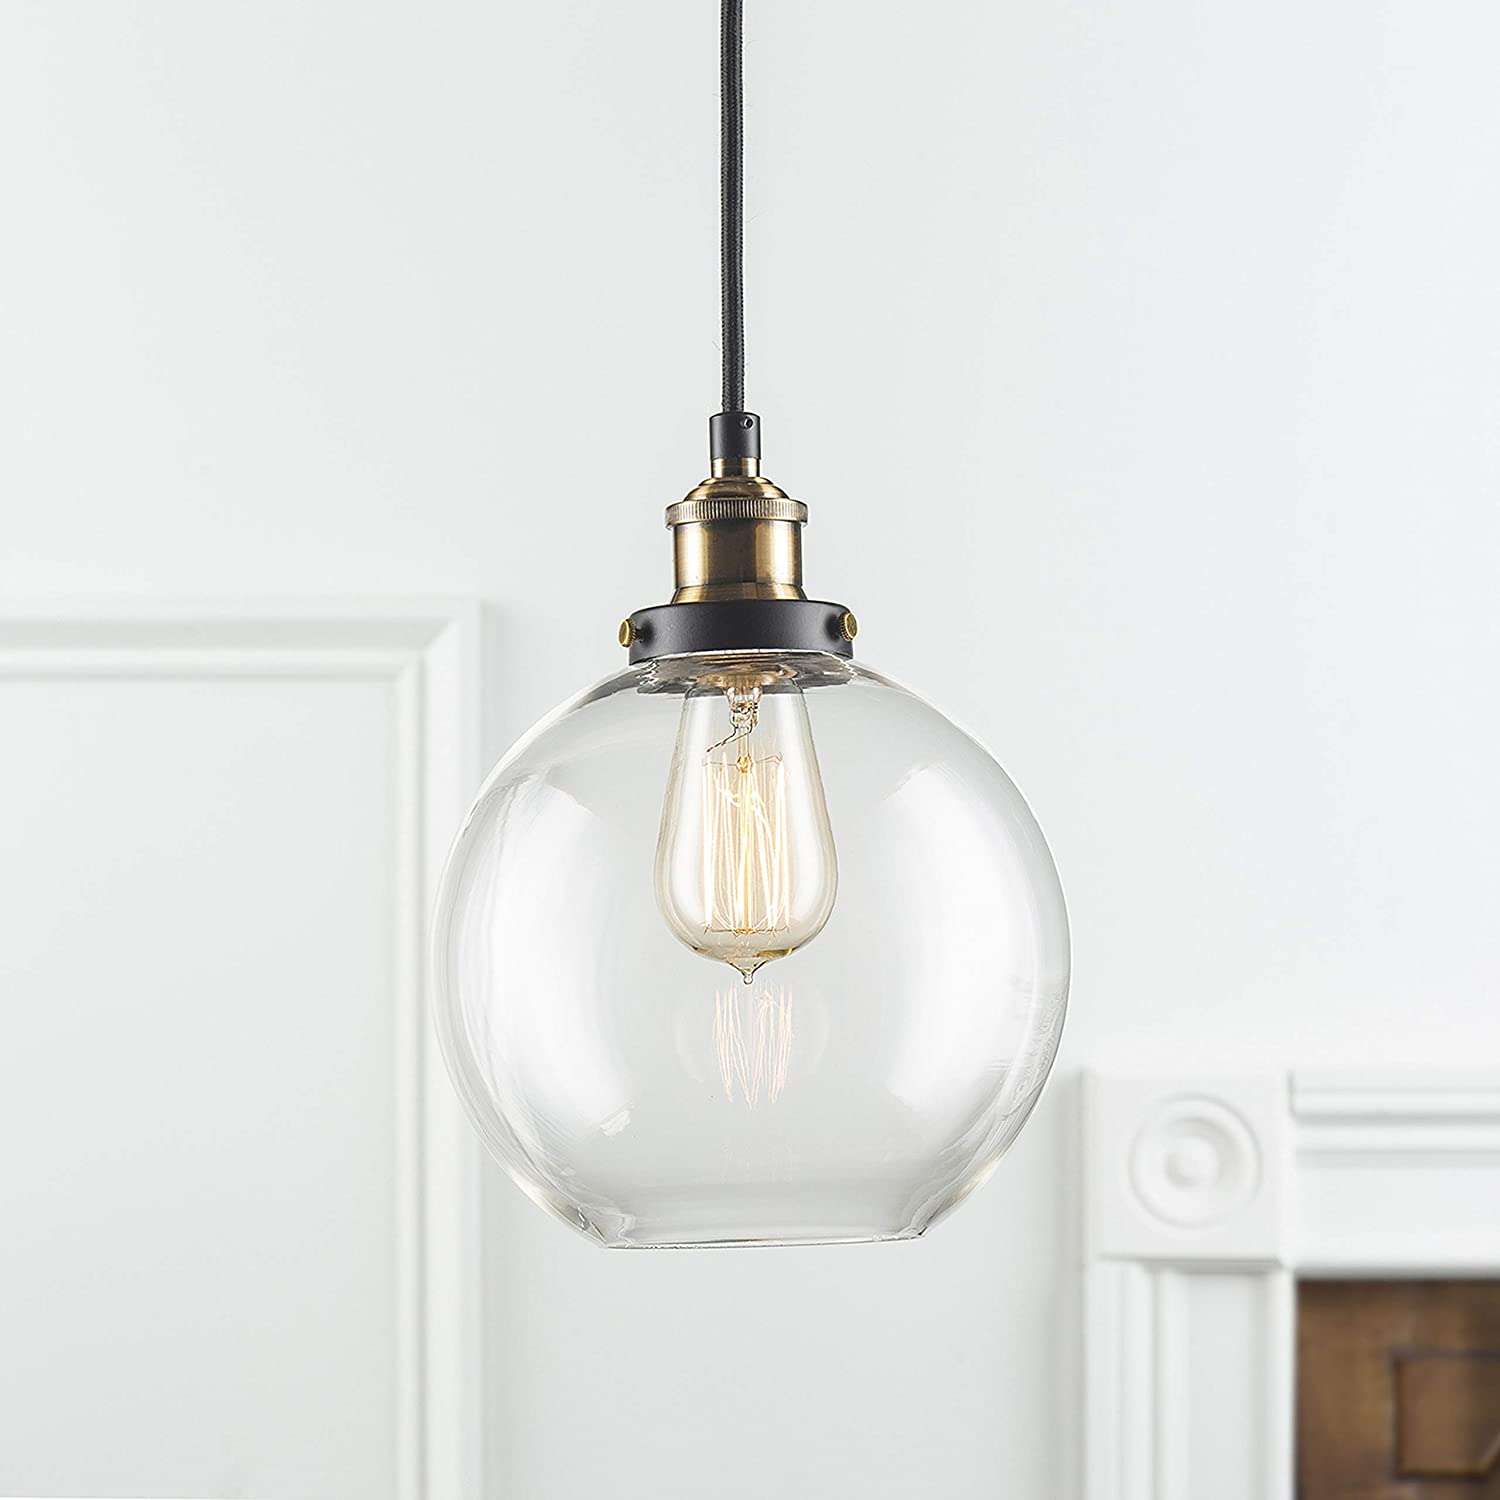 Large Glass Globe Pendant Light Fixture